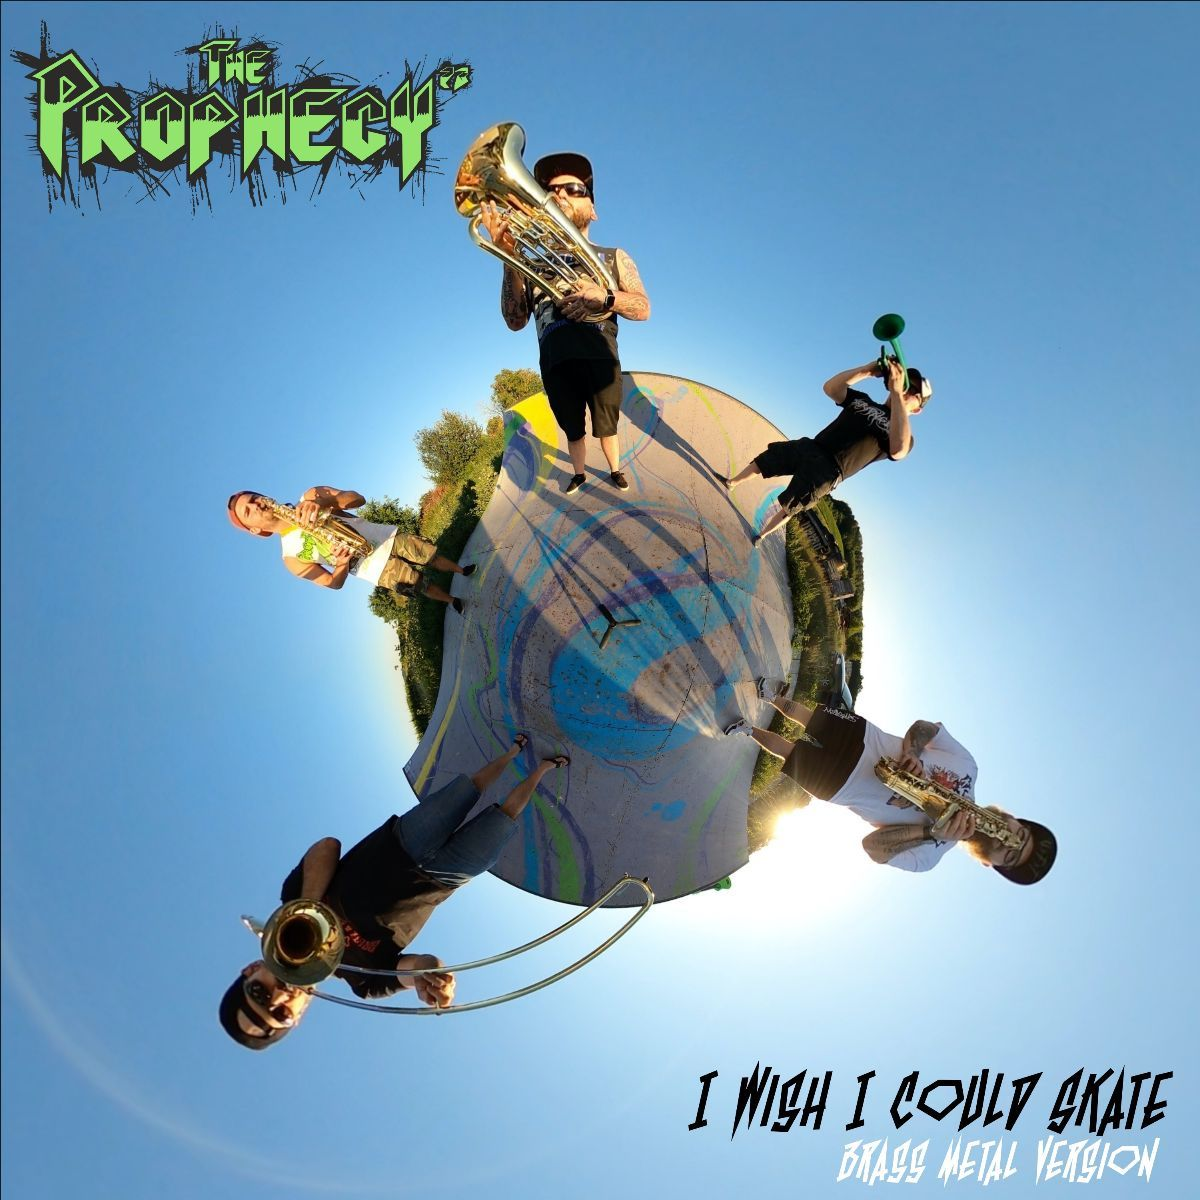 the prophecy 23 - i wish i could skate - album cover